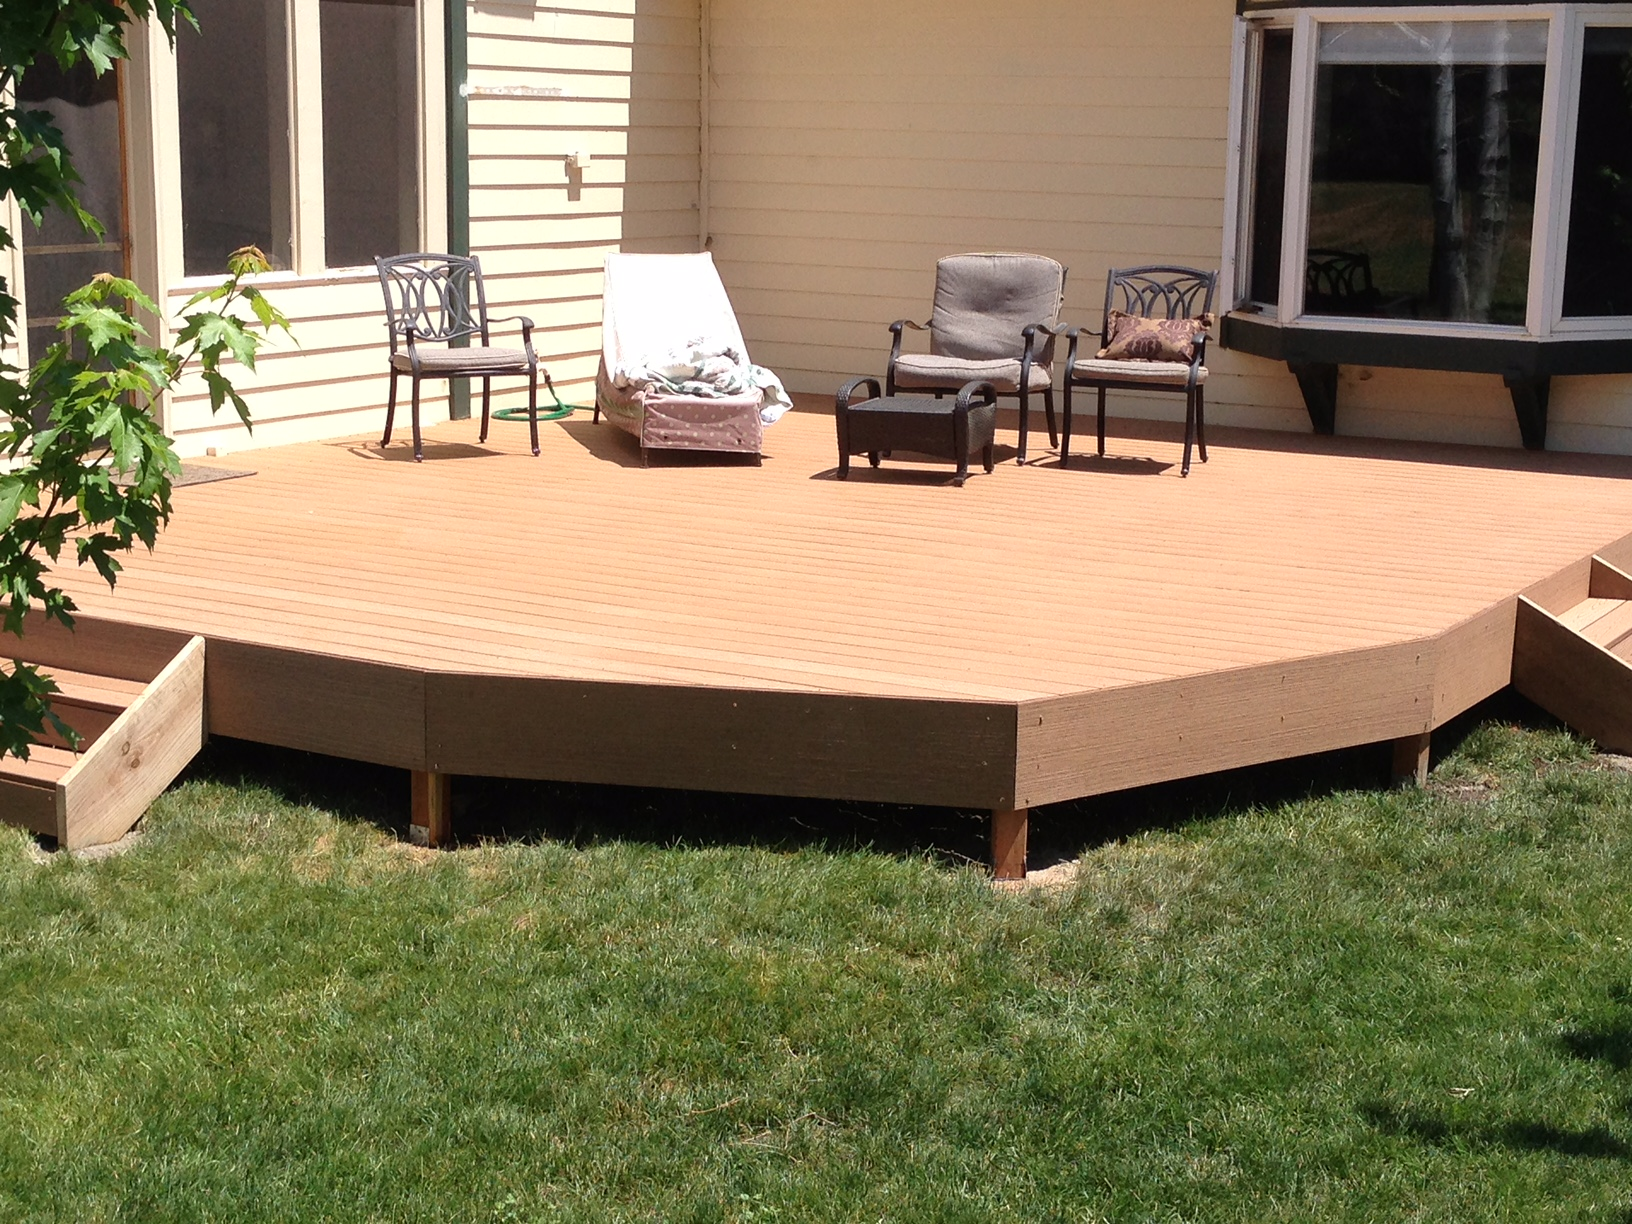 Low Level Deck Timber Tech Decking Deck Tune Up Deck